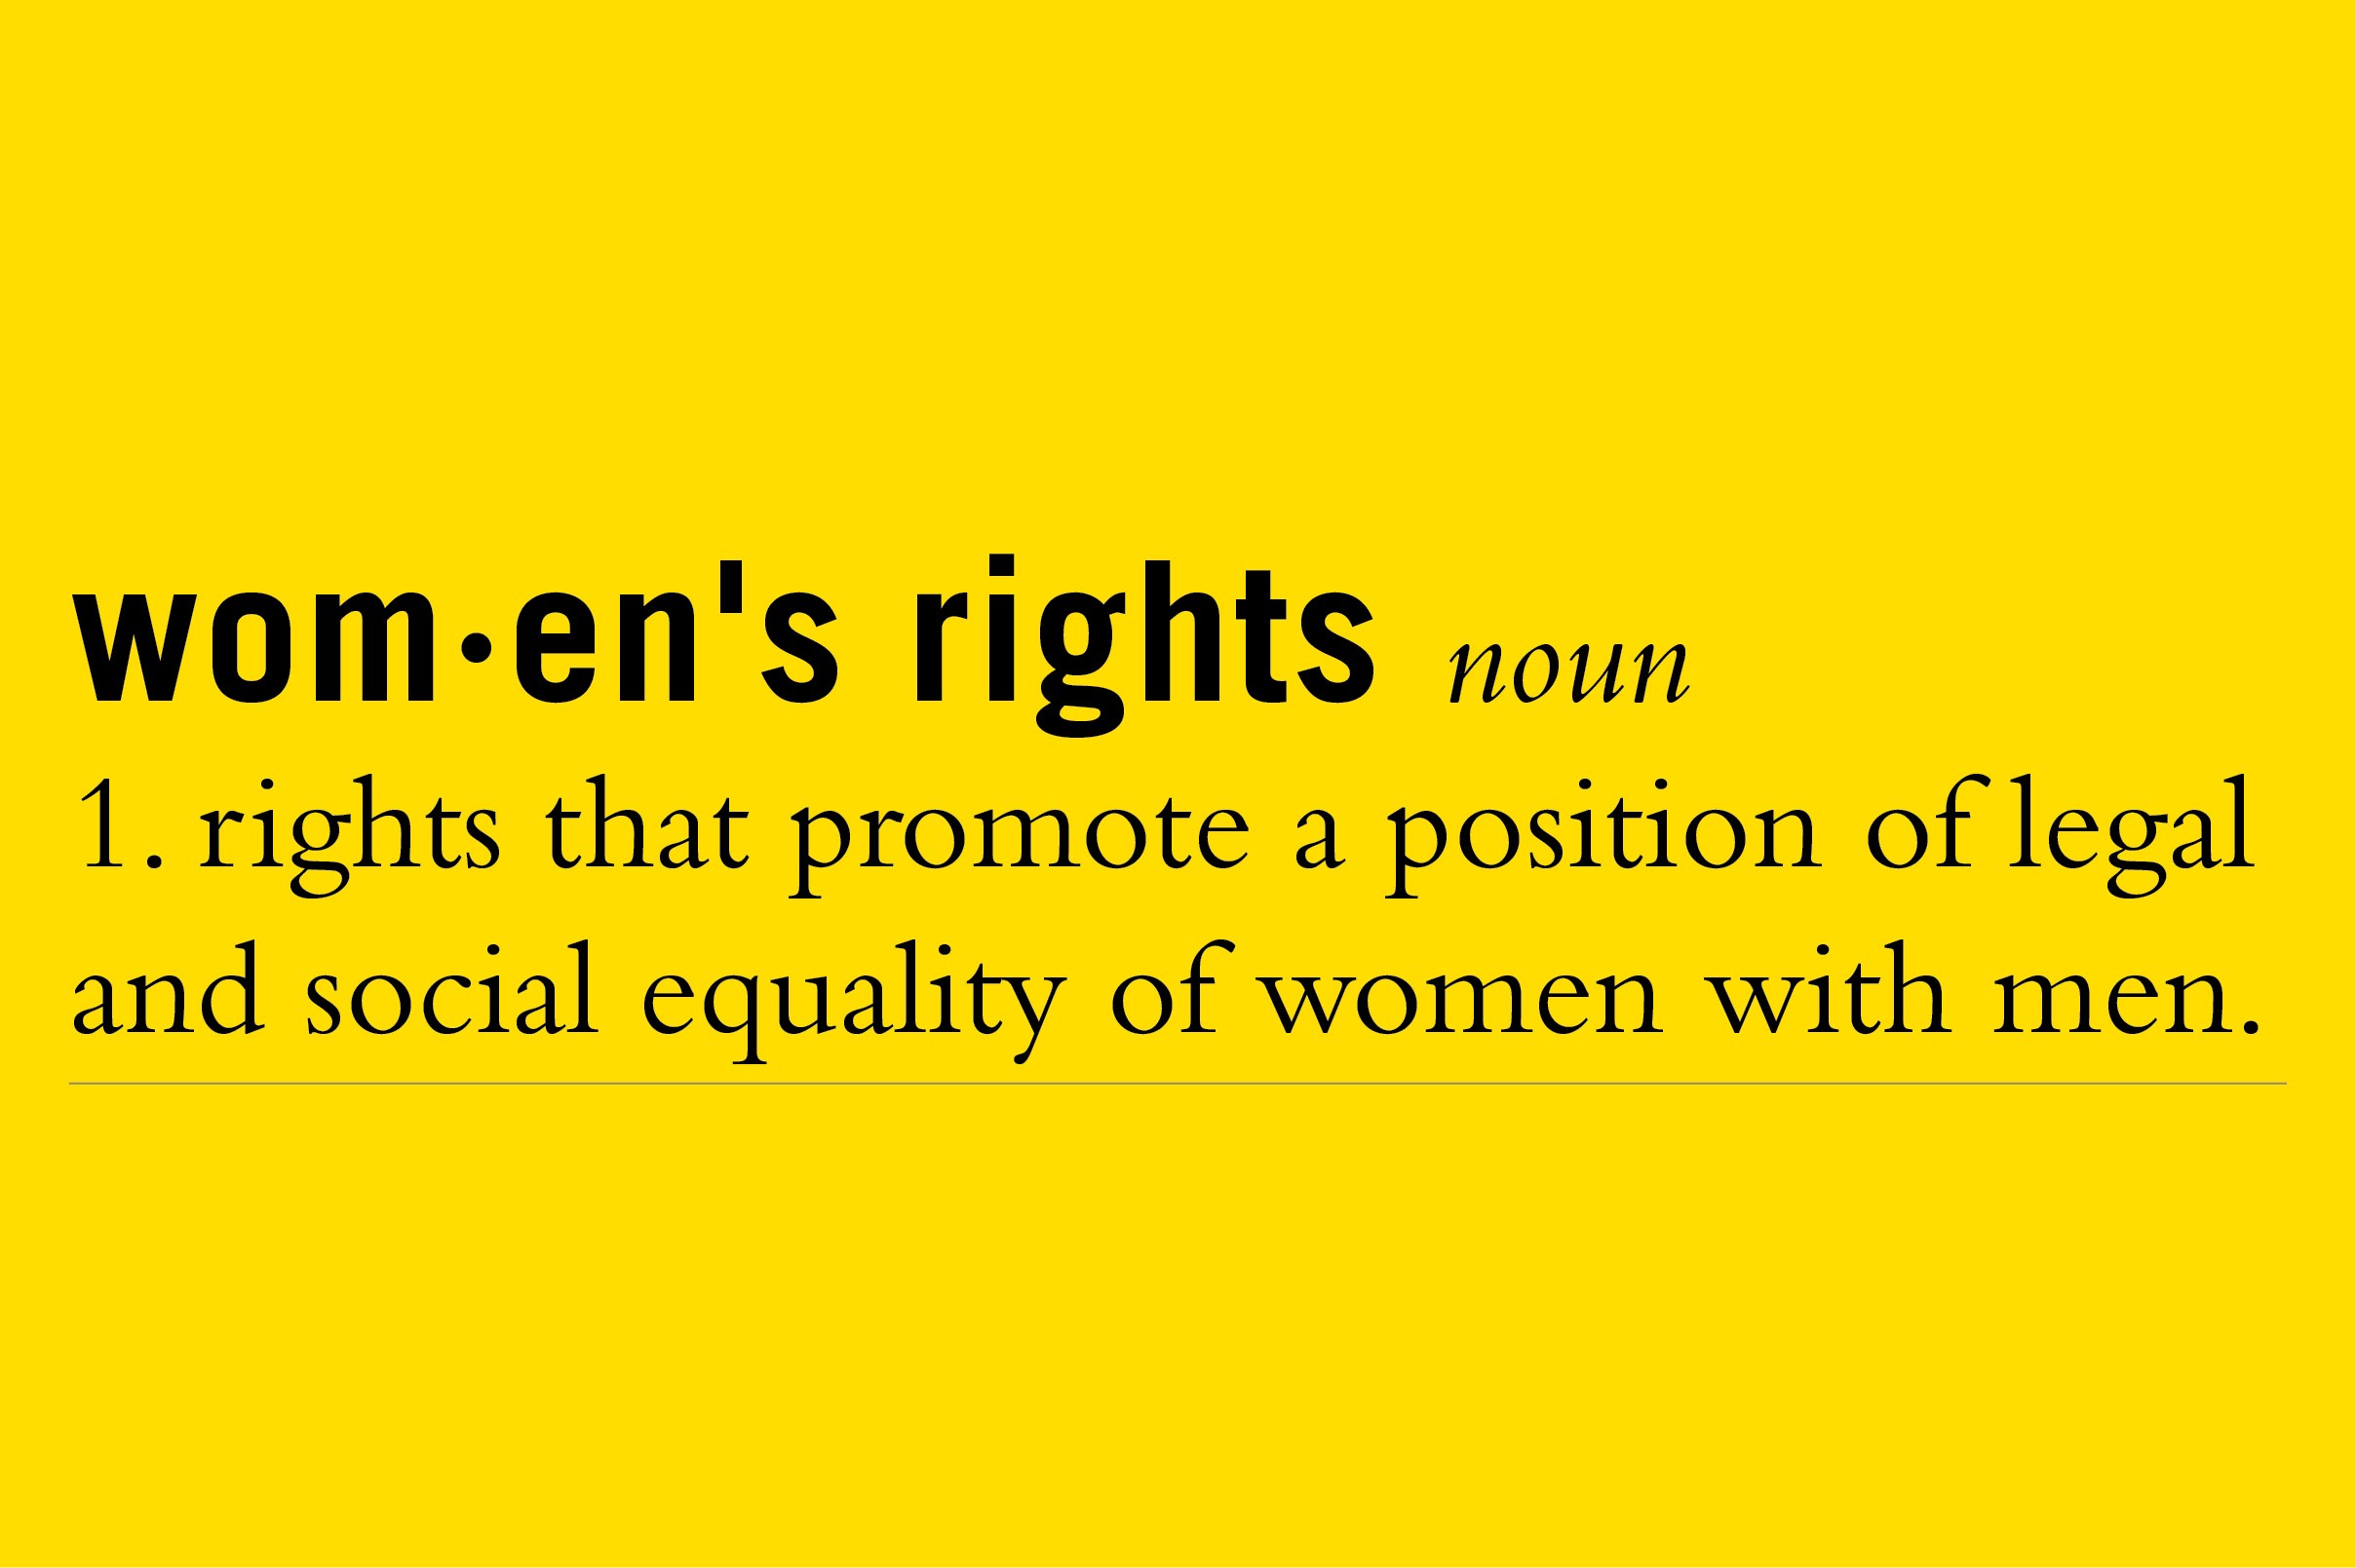 List of women's rights activists